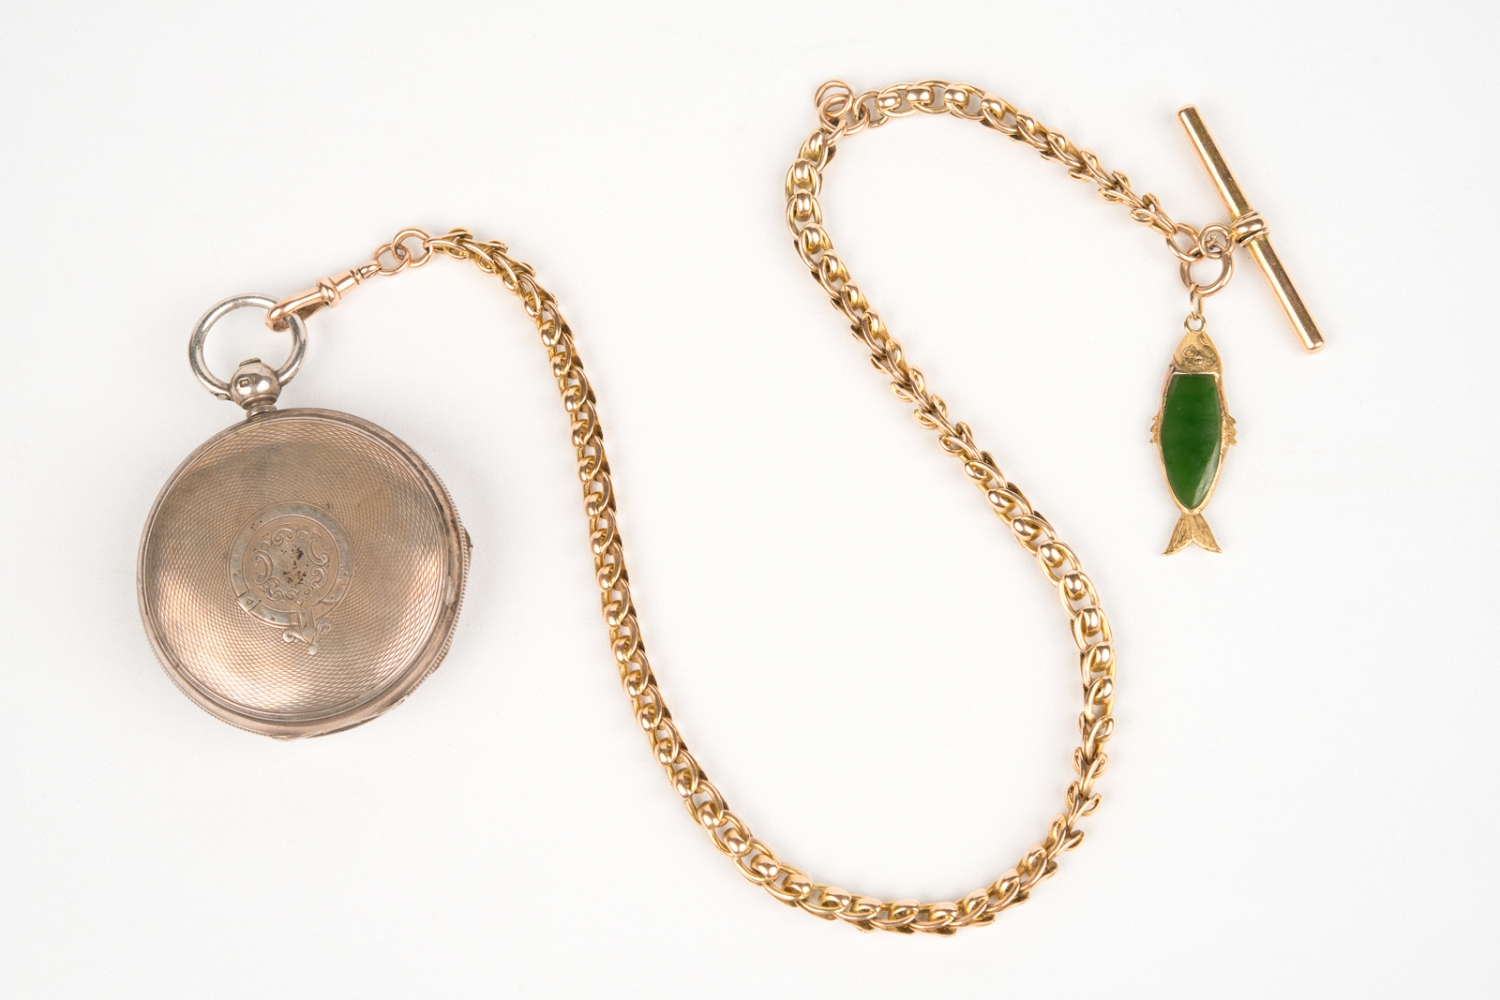 Pocket watch and watch chain with small jade fish attached, owned by Hugo Youngein who operated shop at Susannah Place